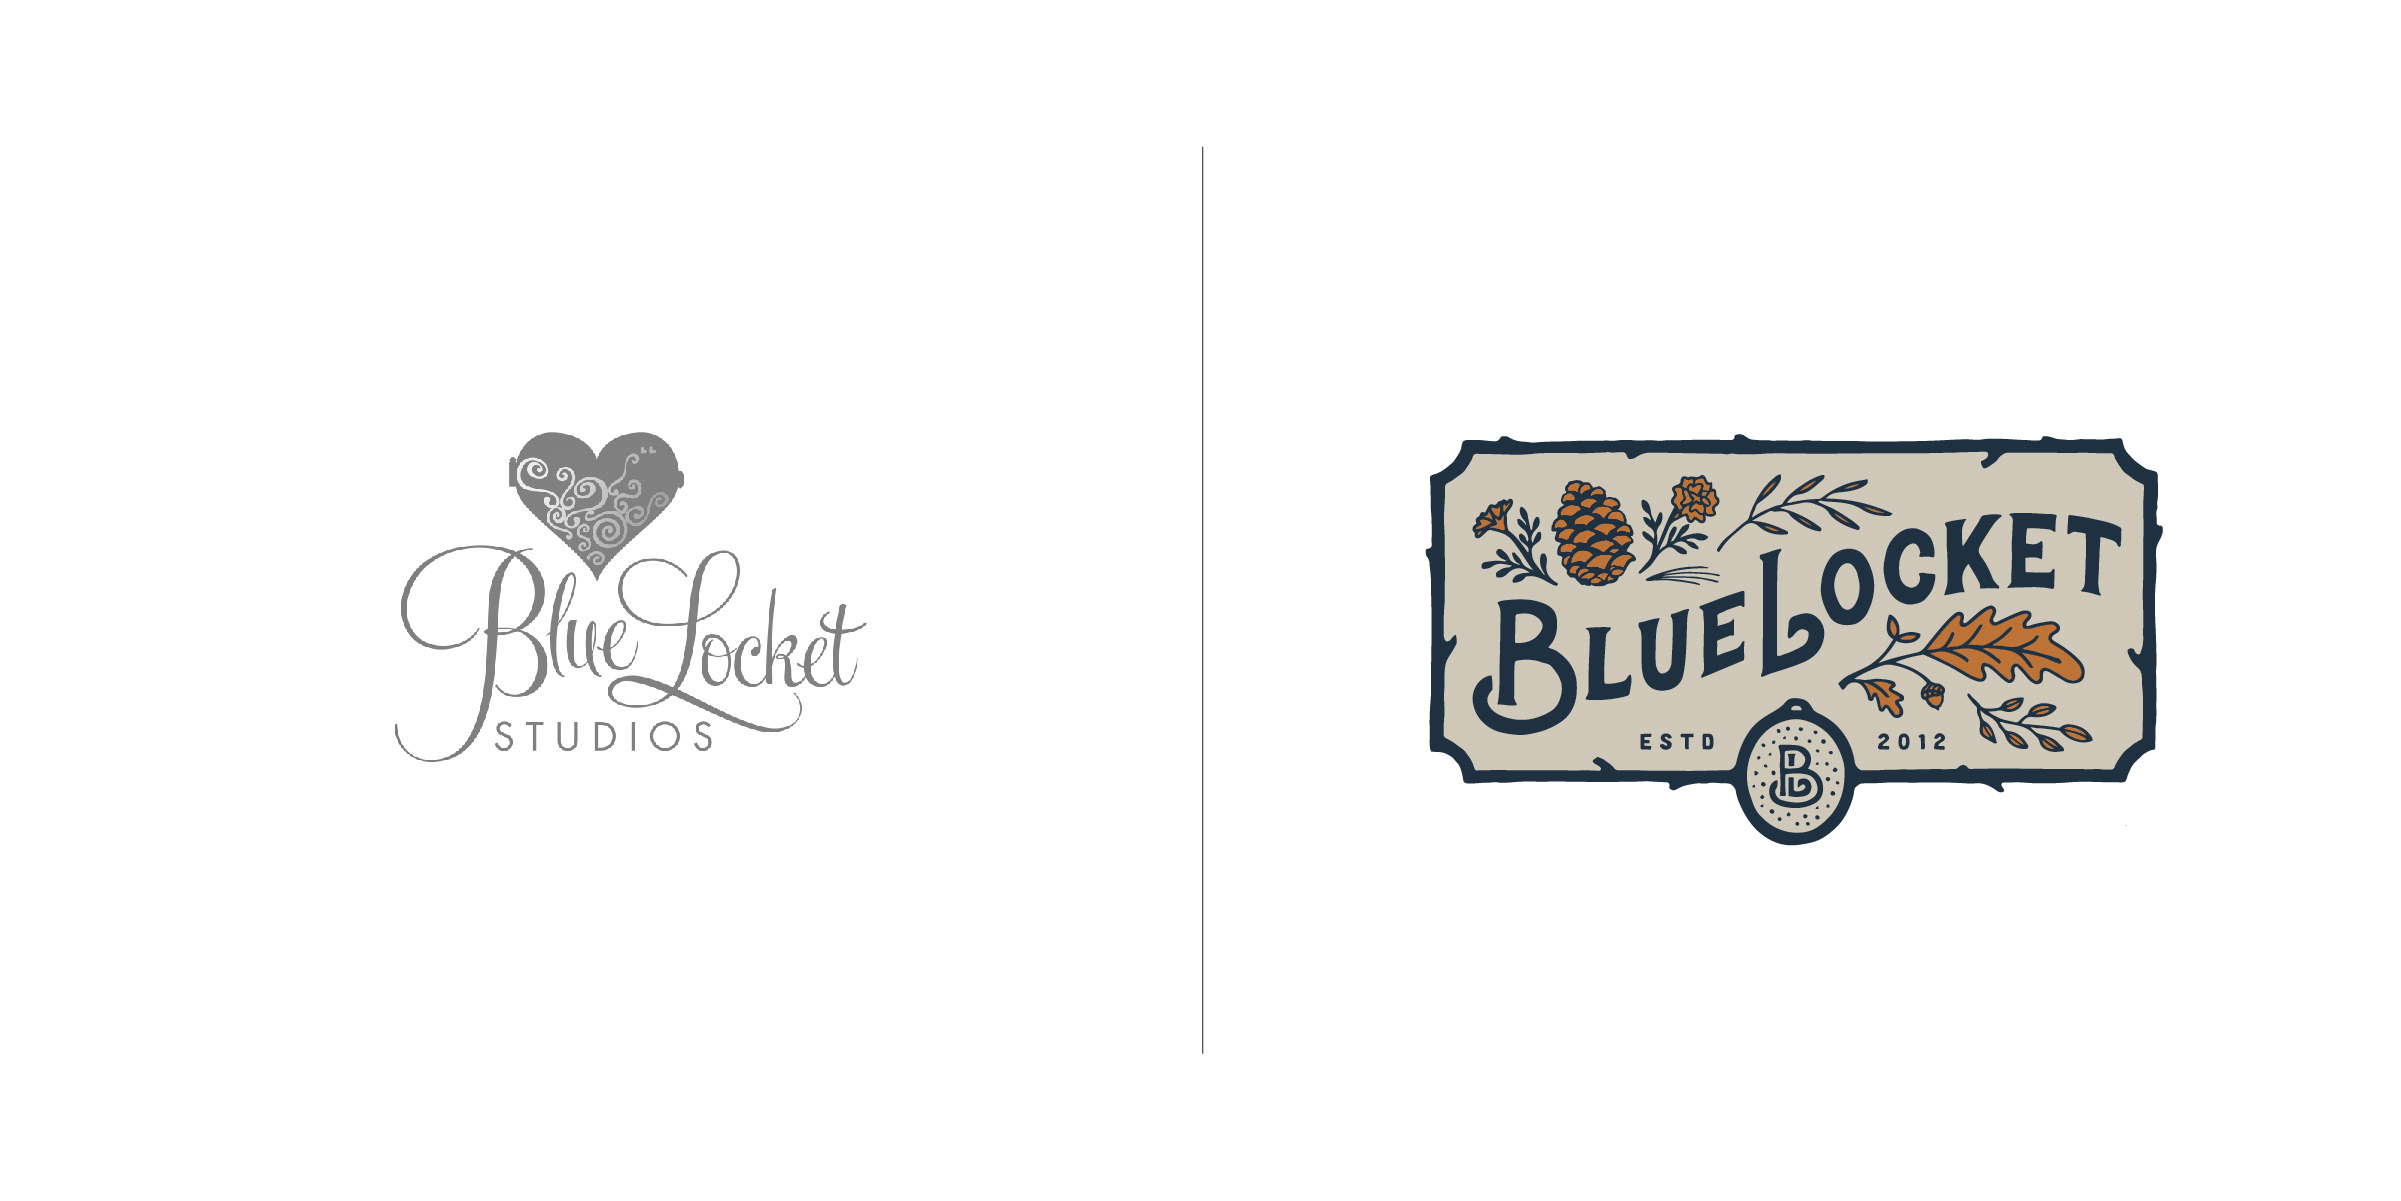 The client — Blue Locket is a talented wedding and lifestyle photography business in New England.  The goal — In a sea of logo monotony, Blue Locket needed to stand apart in the industry. We hand crafted a truly original design that authentically articulates the warmth, comfort, personable, professional and rustic nature they are known for to best attract their ideal clientele.